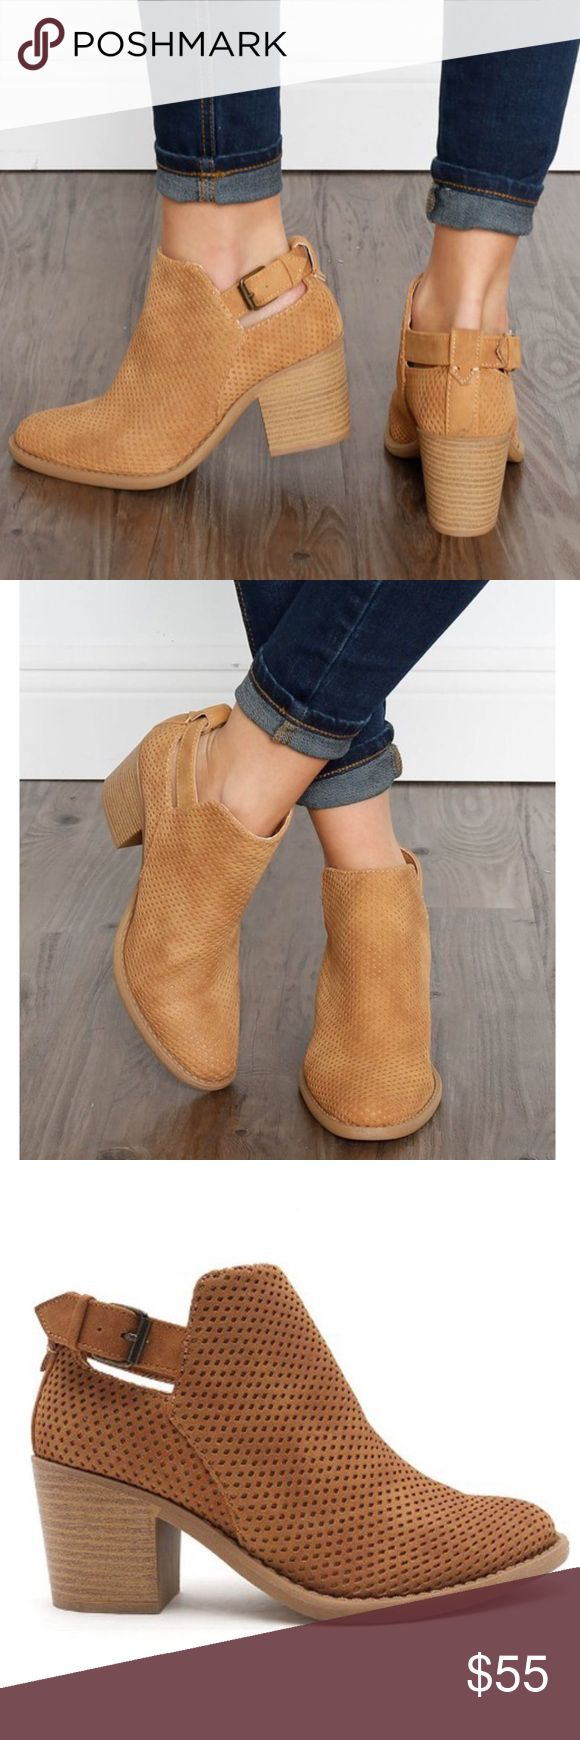 JOSIE cut out suede bootie - TAN Bootie featuring perforated faux suede & side buckle. ACTUAL COLOR IS PIC 3 NO TRADE, PRICE FIRM Shoes Ankle Boots & Booties